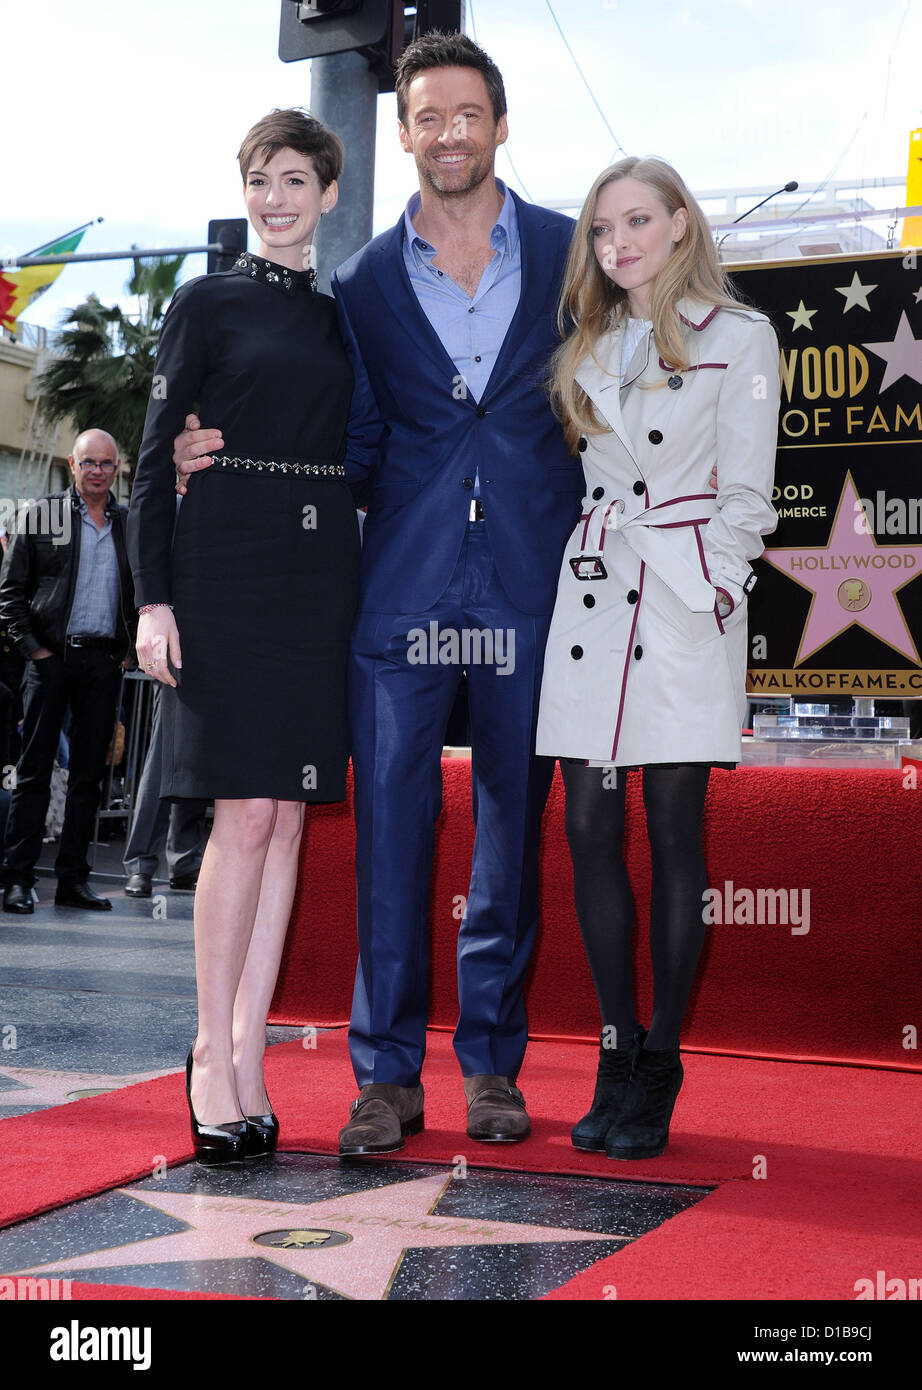 Dec. 12, 2012 - Hollywood, California, U.S. - Anne Hathaway, Hugh Jackman & Amanda Seyfried arrives for Walk - Stock Image